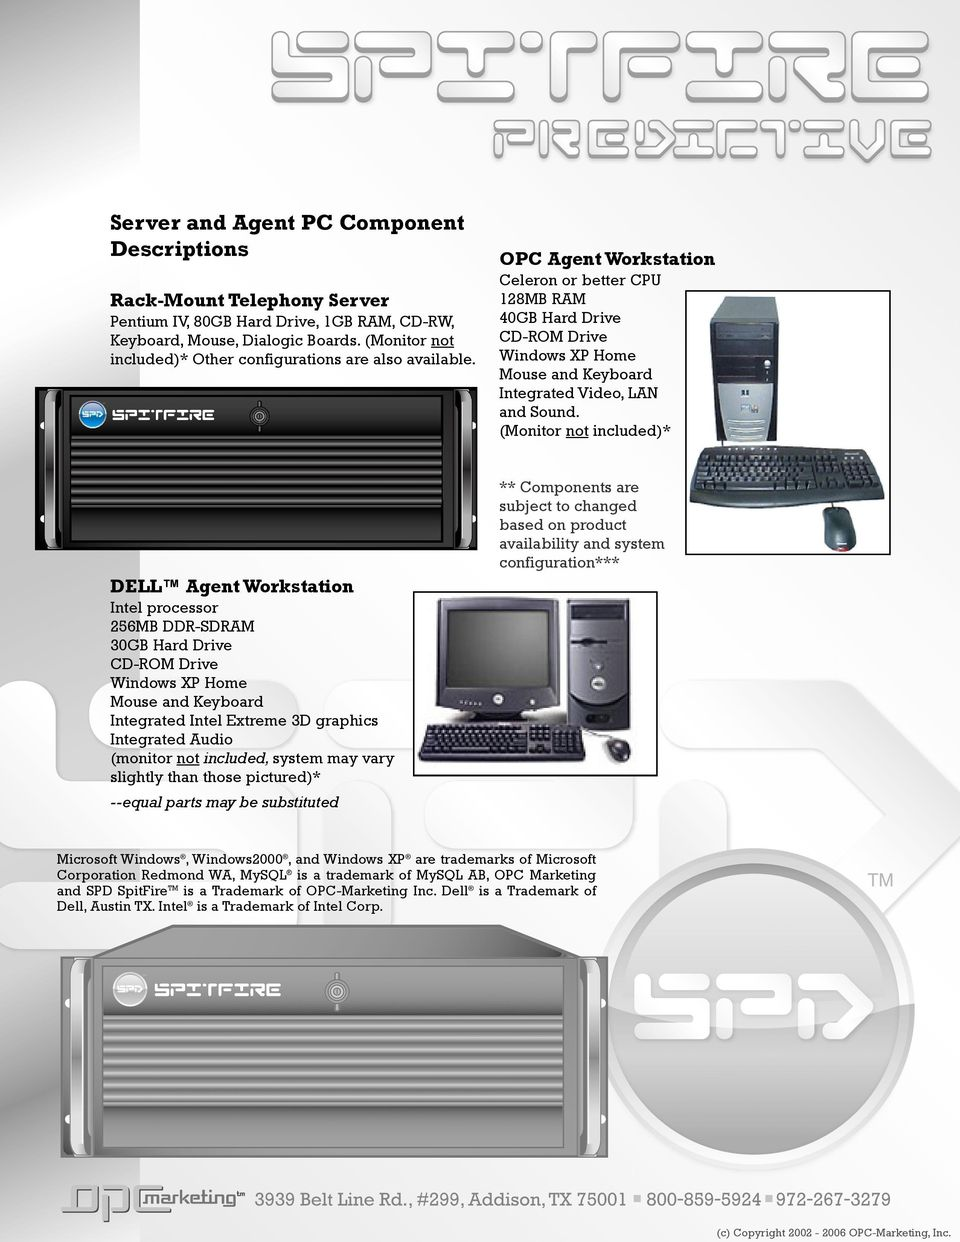 OPC Agent Workstation Celeron or better CPU 128MB RAM 40GB Hard Drive CD ROM Drive Windows XP Home Mouse and Keyboard Integrated Video, LAN and Sound.